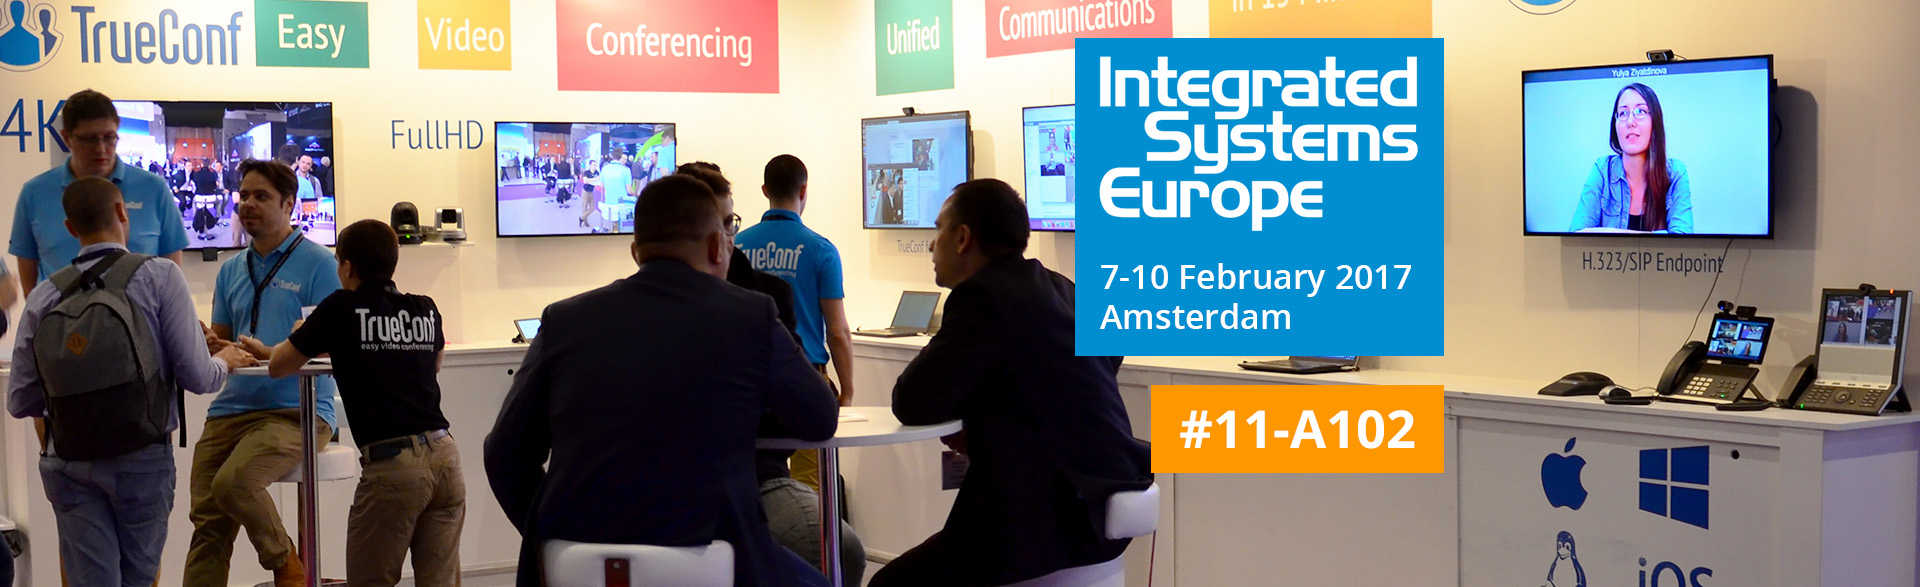 TrueConf joins Integrated Systems Europe 2017. 7-10 February, Amsterdam